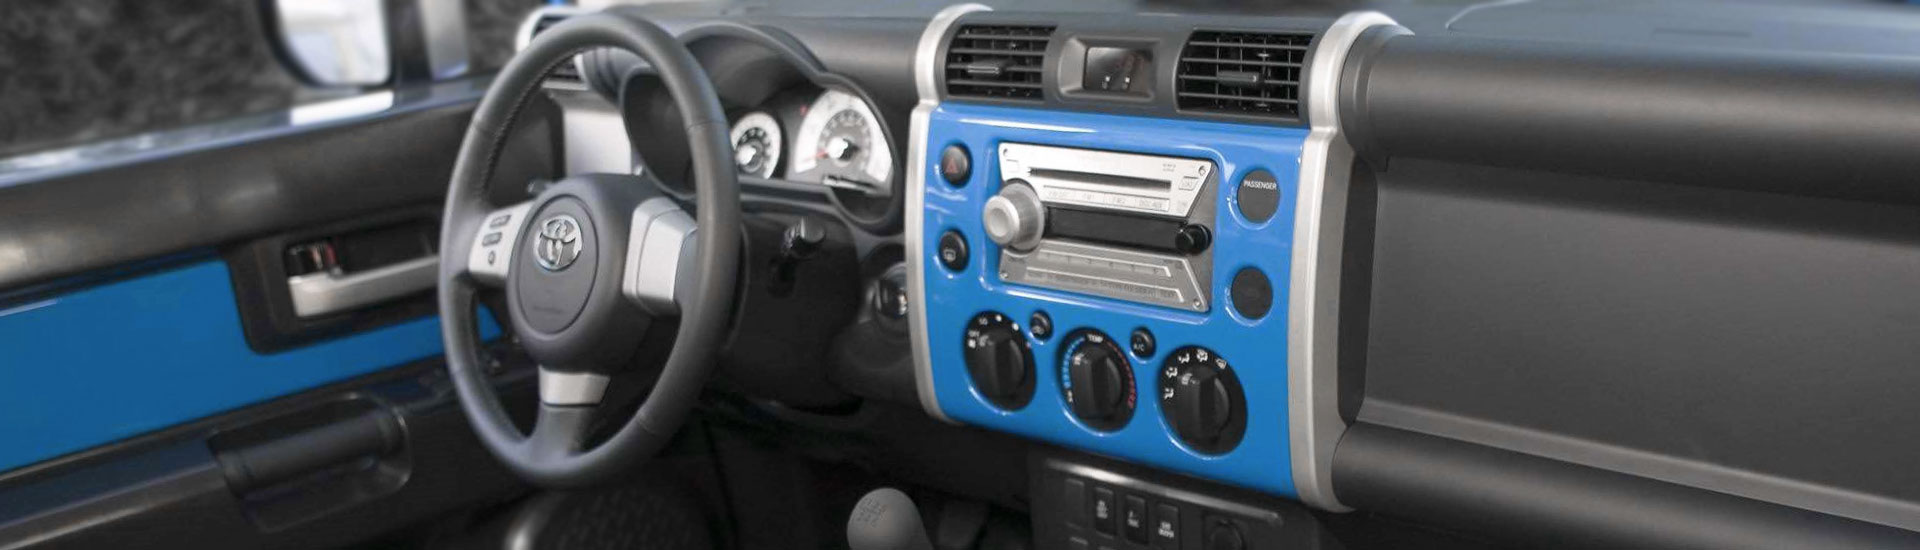 Toyota FJ Cruiser Dash Kits